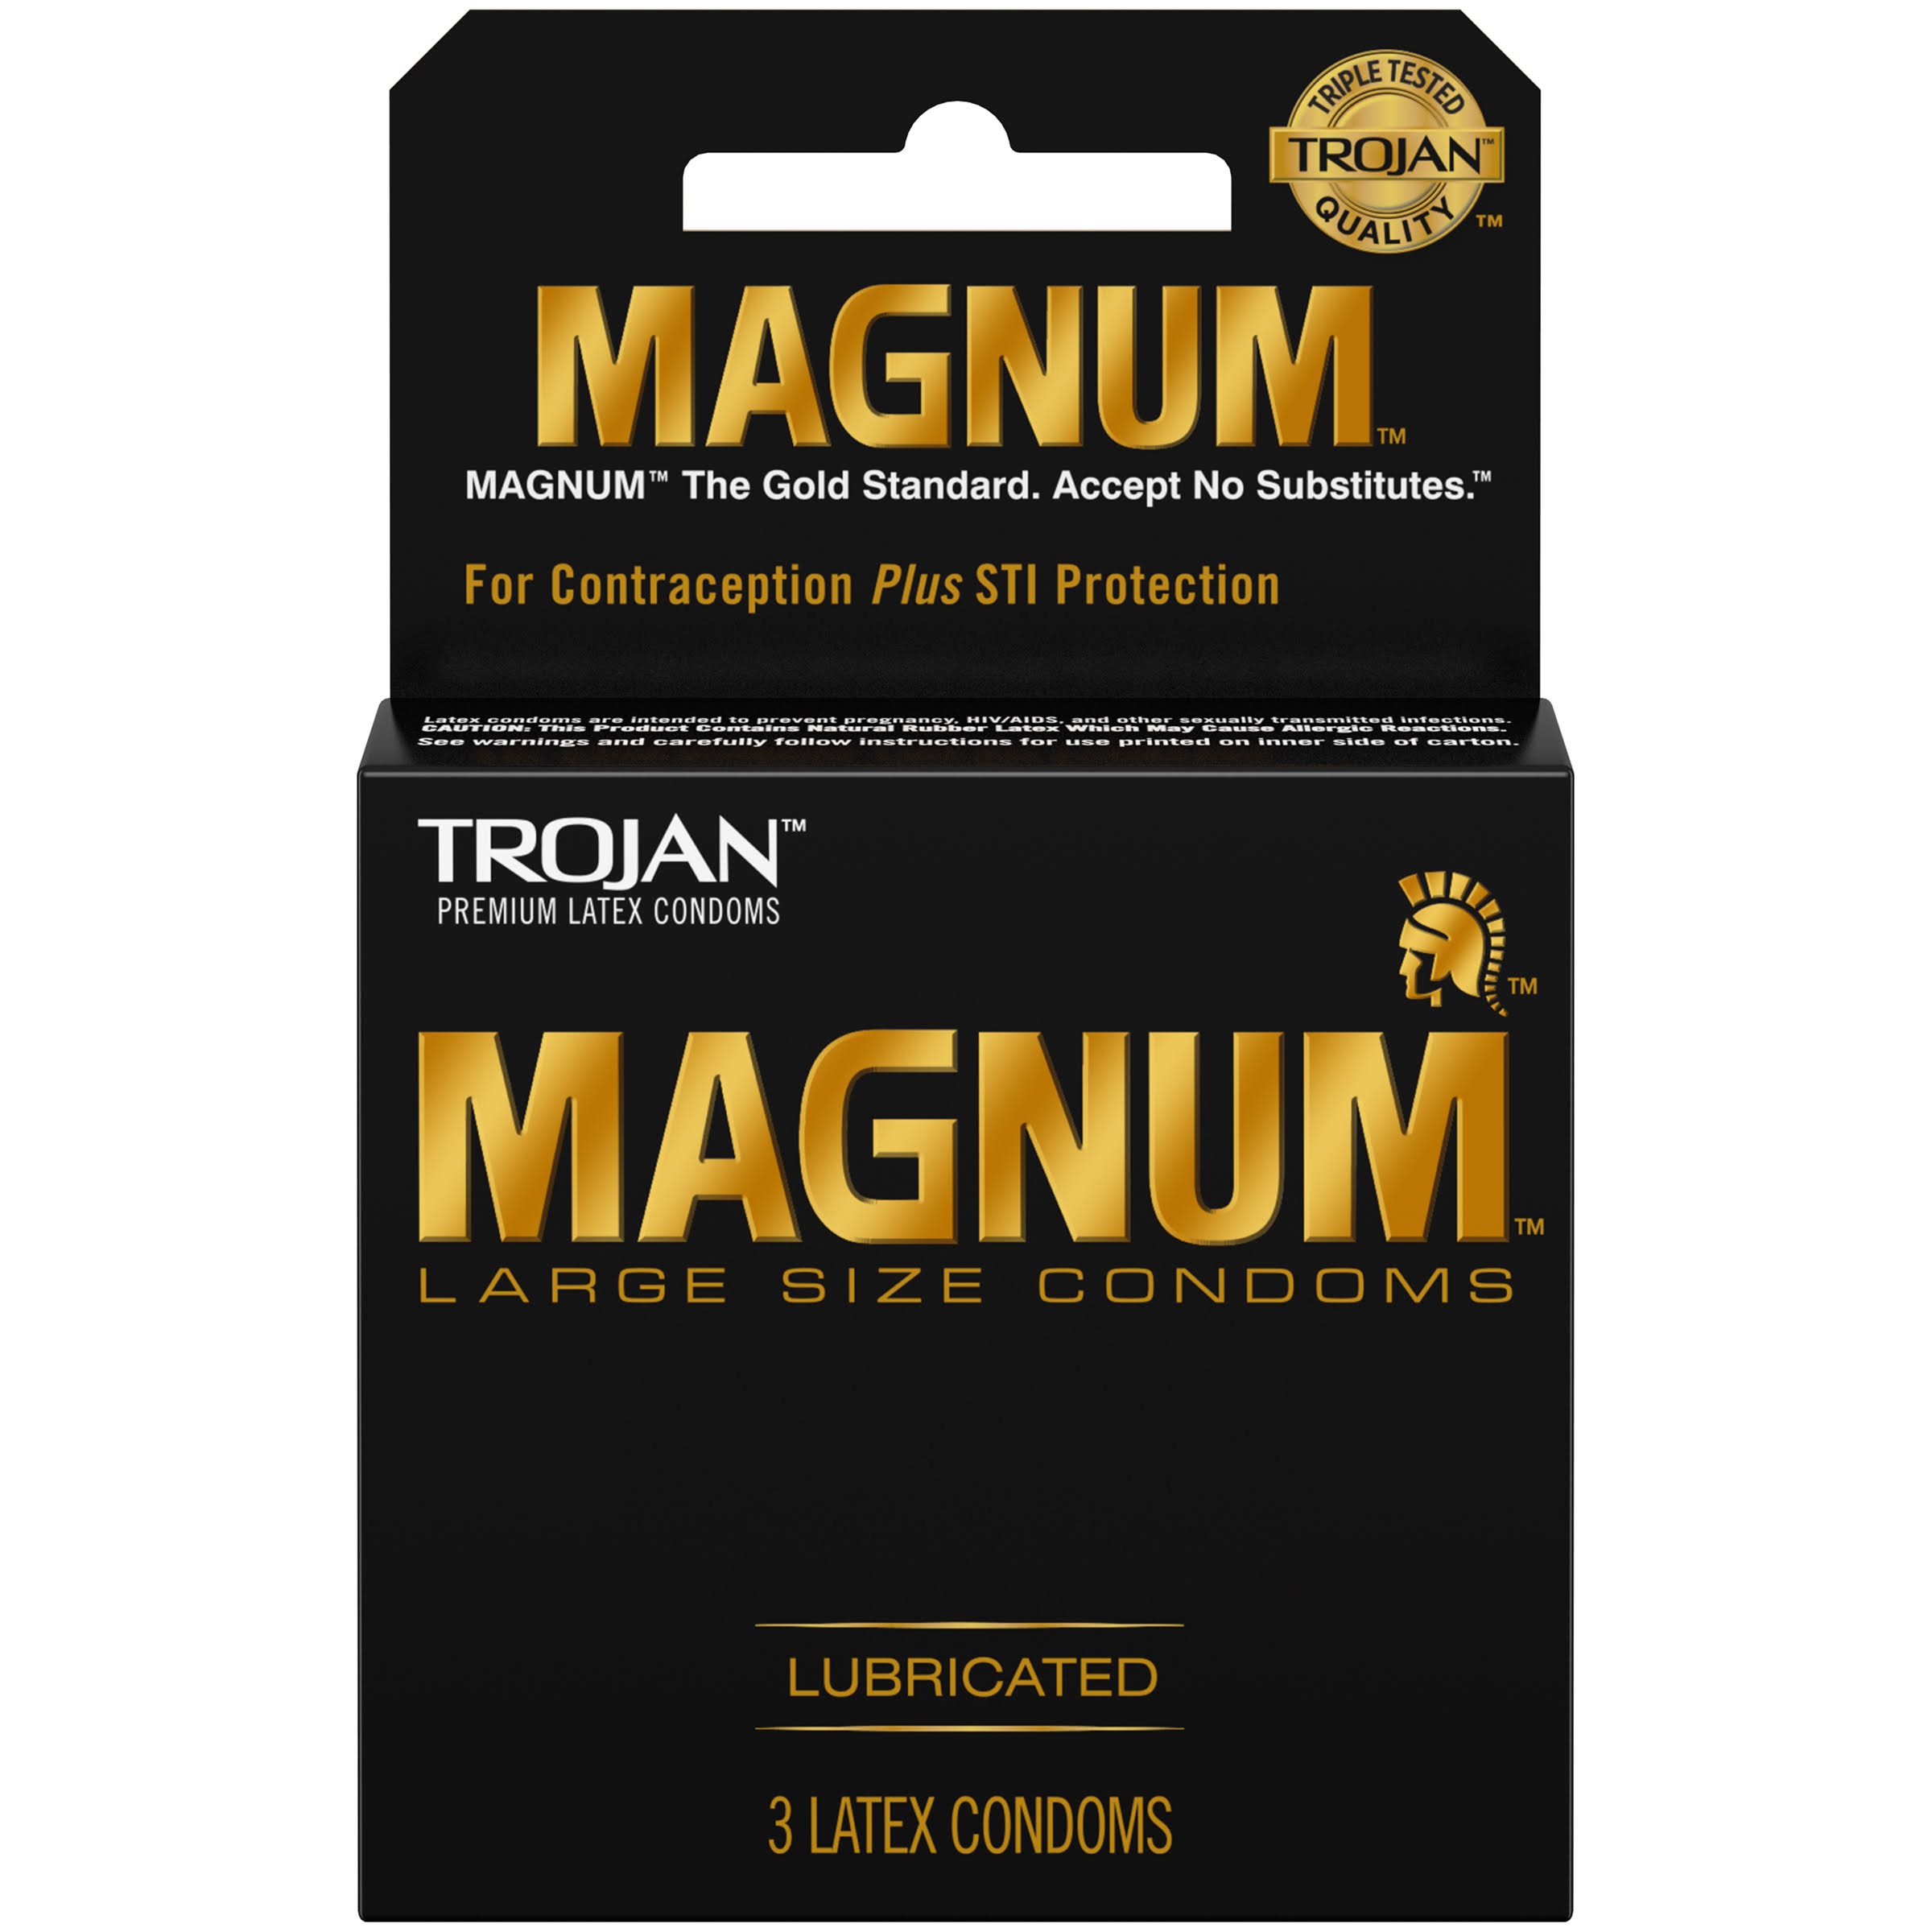 Trojan Magnum Lubricated Premium Latex Condoms - Large Size, 3 Pack